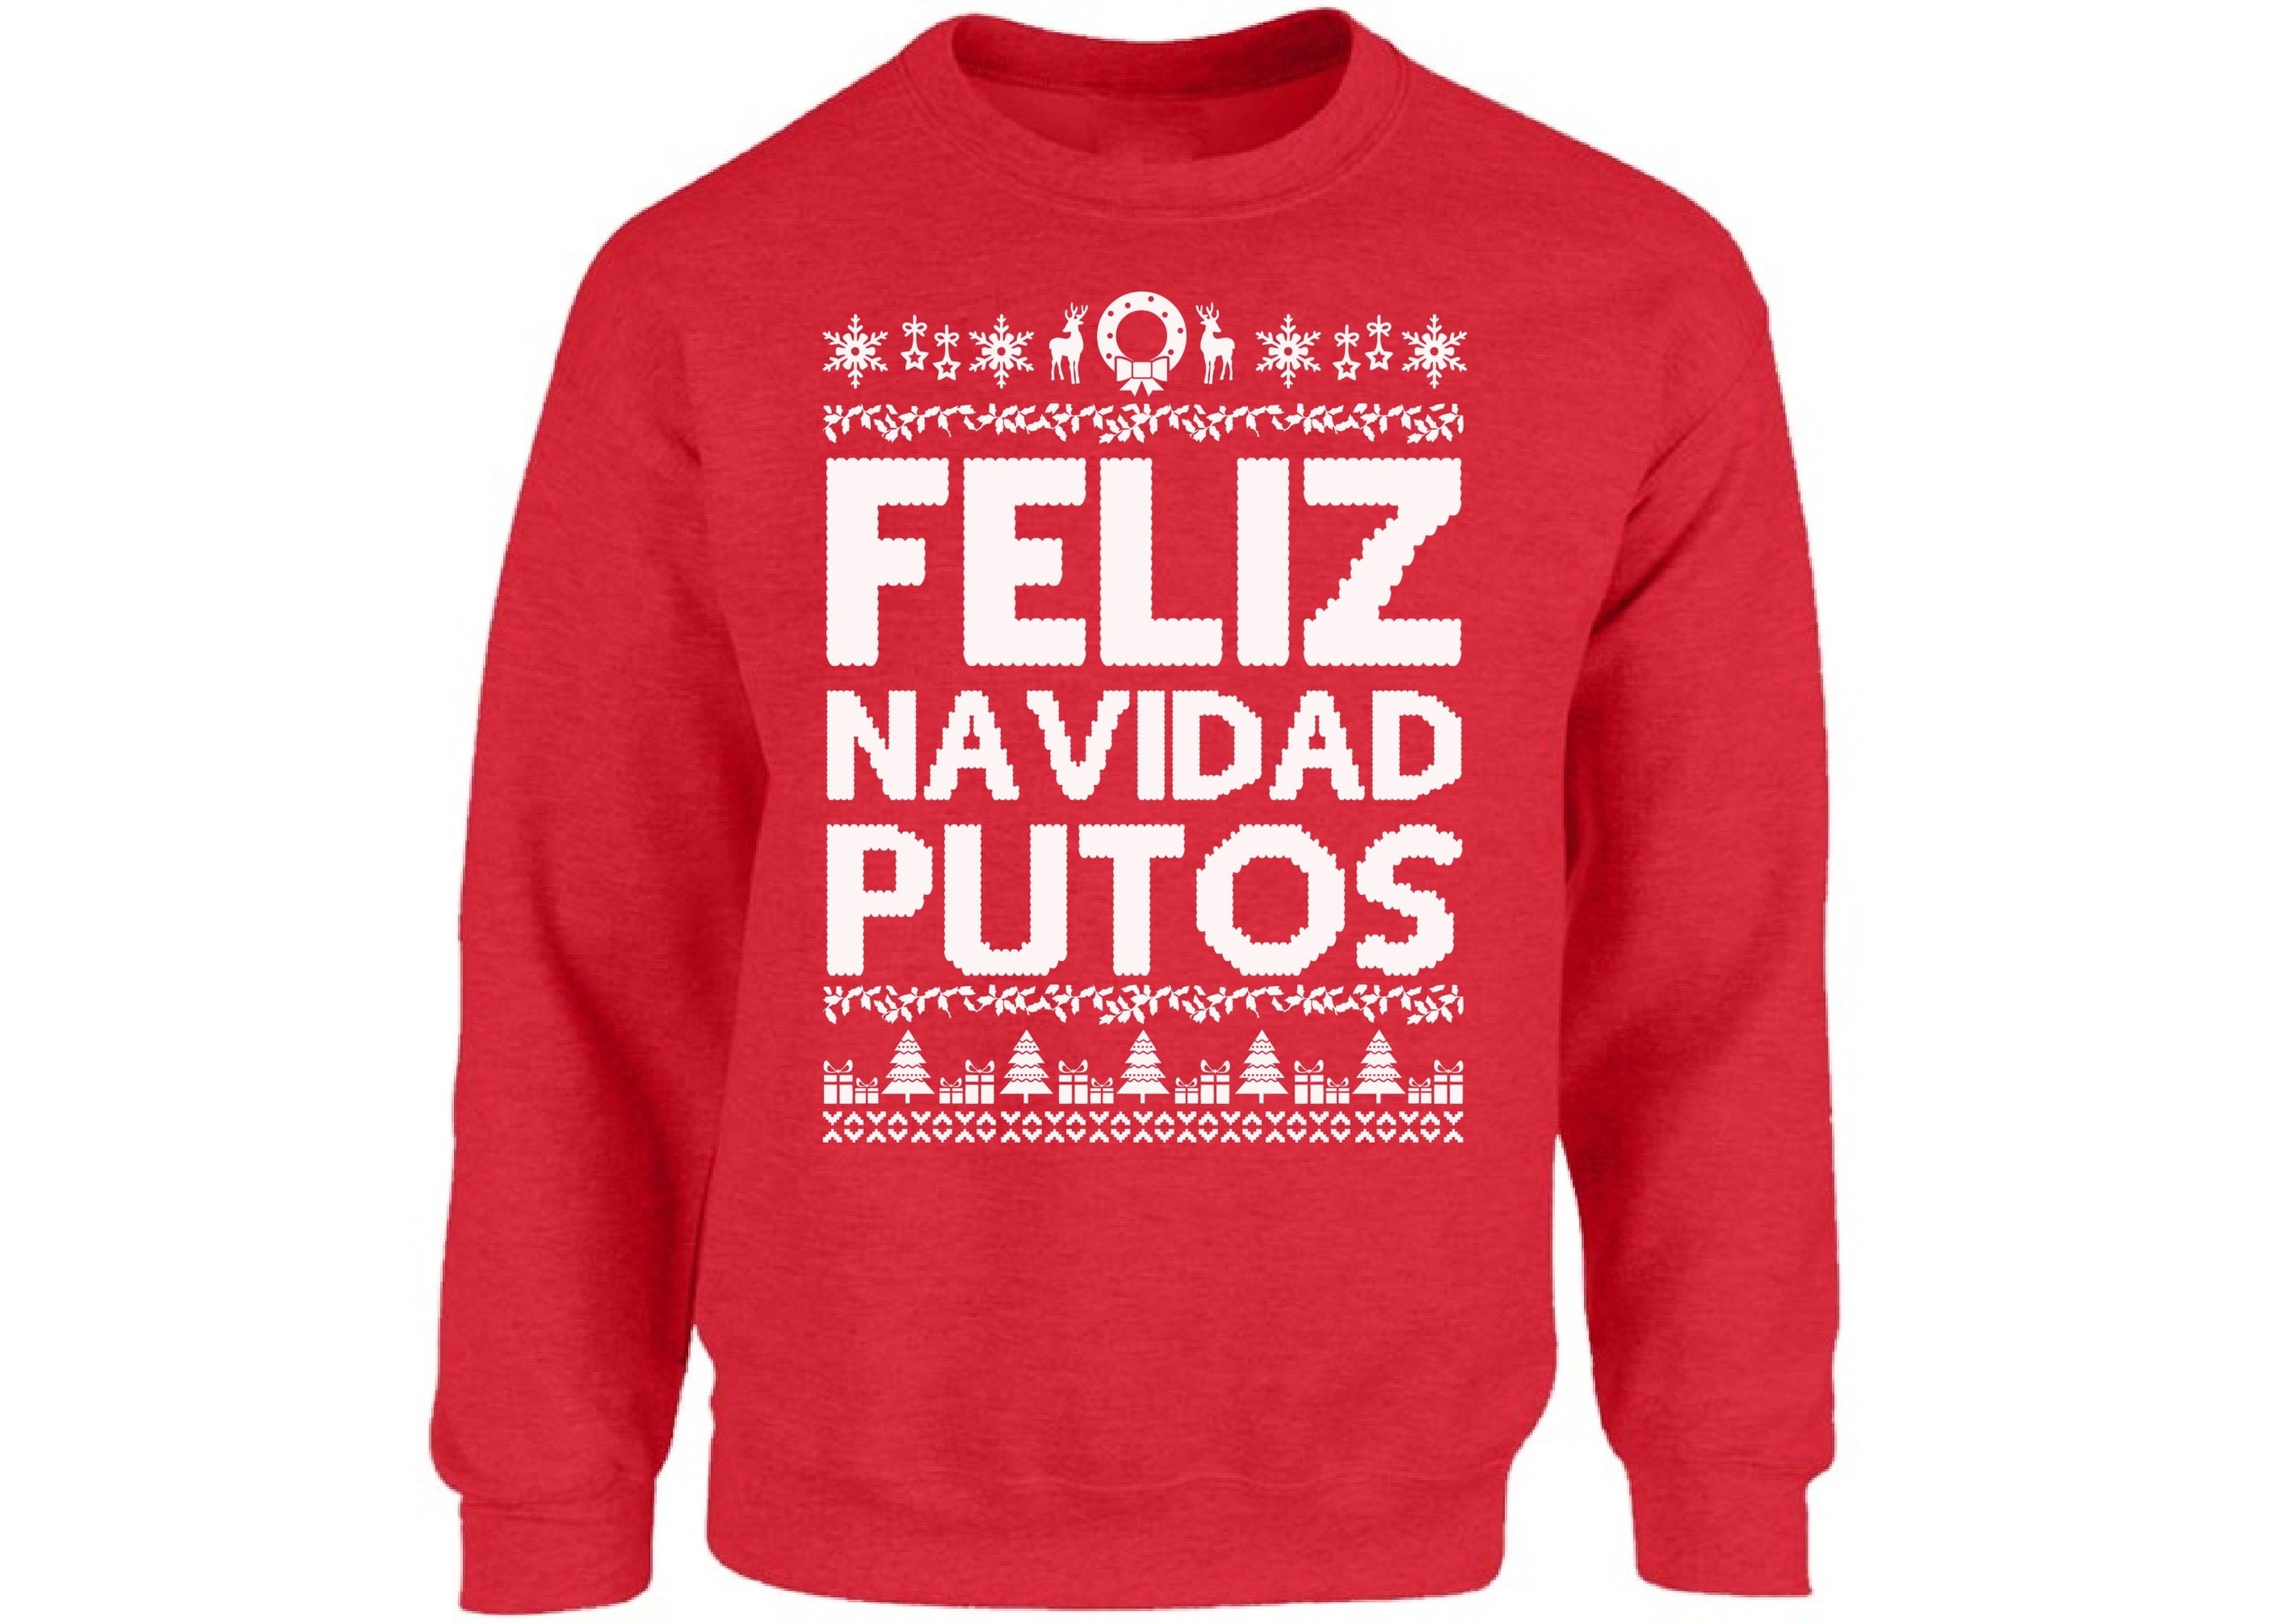 89d90174e Feliz Navidad Putos Sweatshirt Ugly Christmas Sweater For Men | Etsy